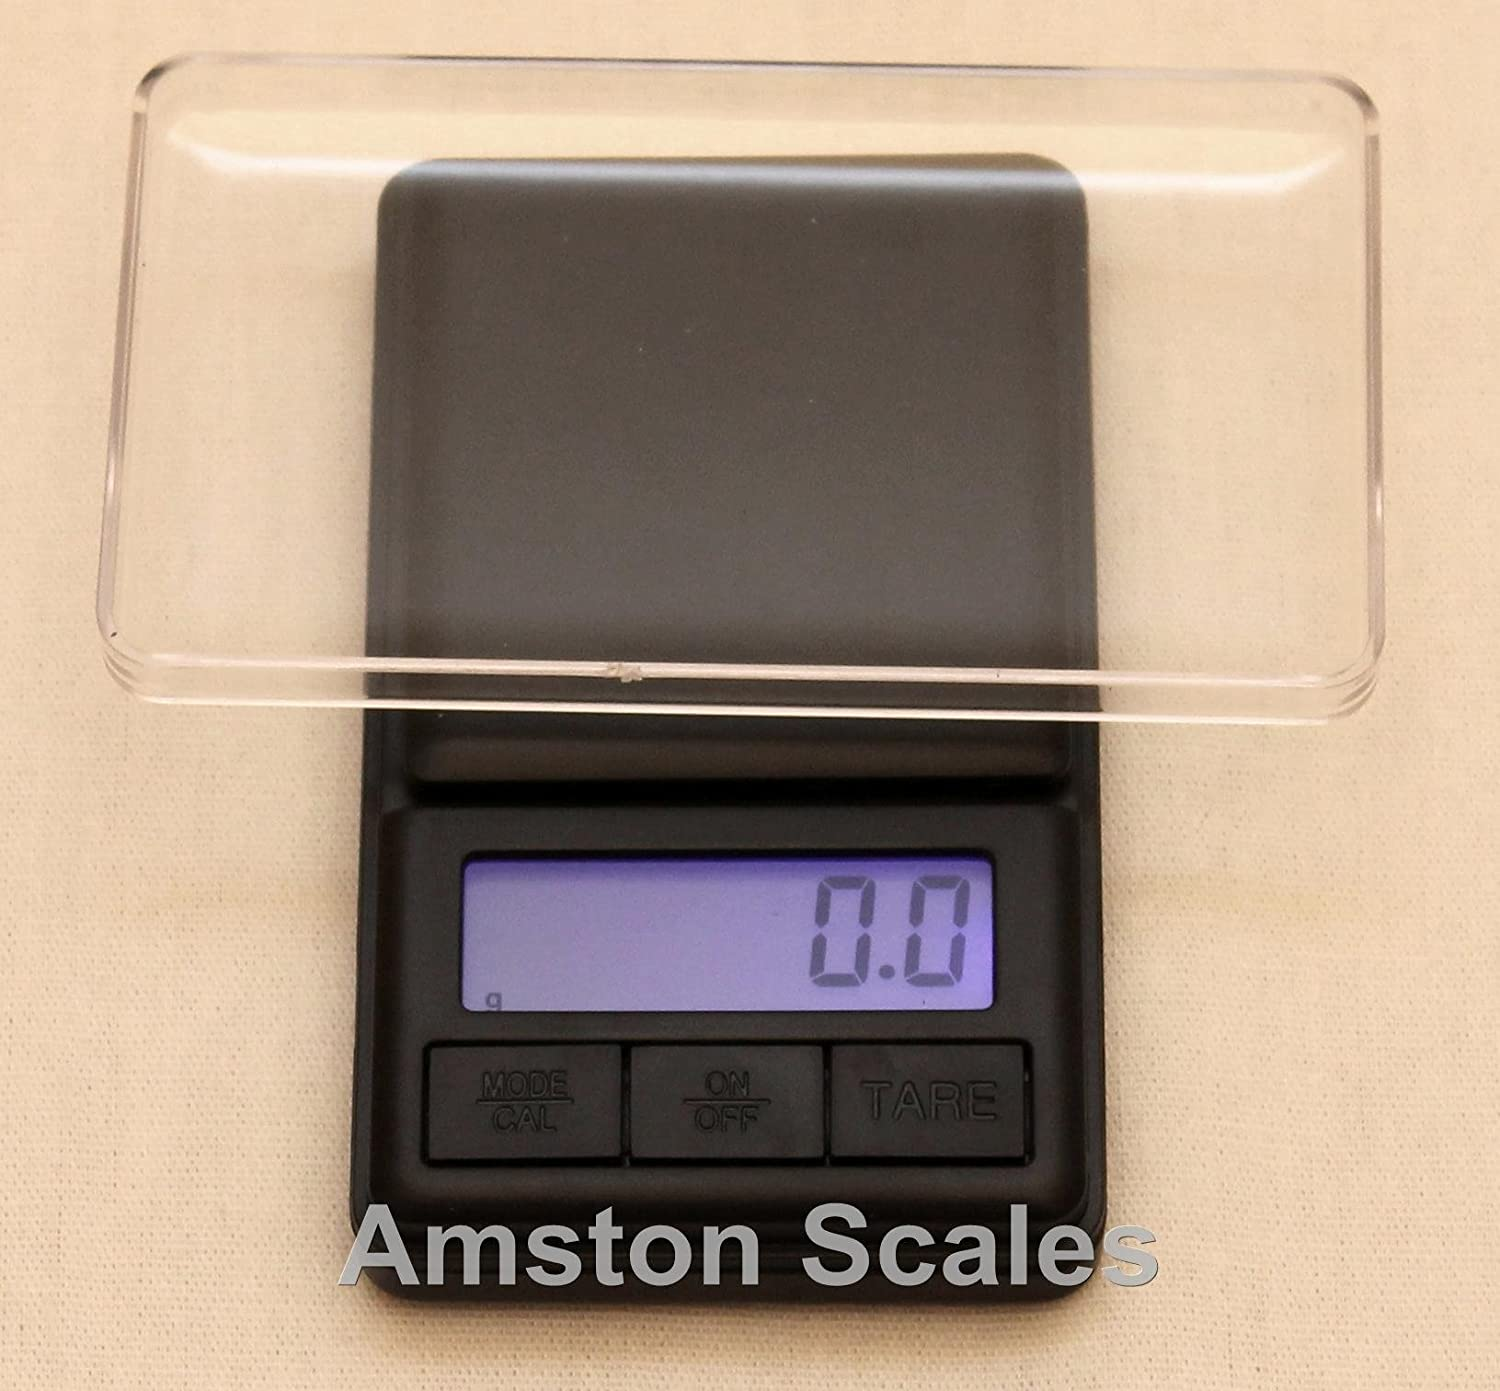 Digital Scale Tool for jewelry gold metal silver /& more measurement units in grams ounces grains pennyweights troy ounces carats